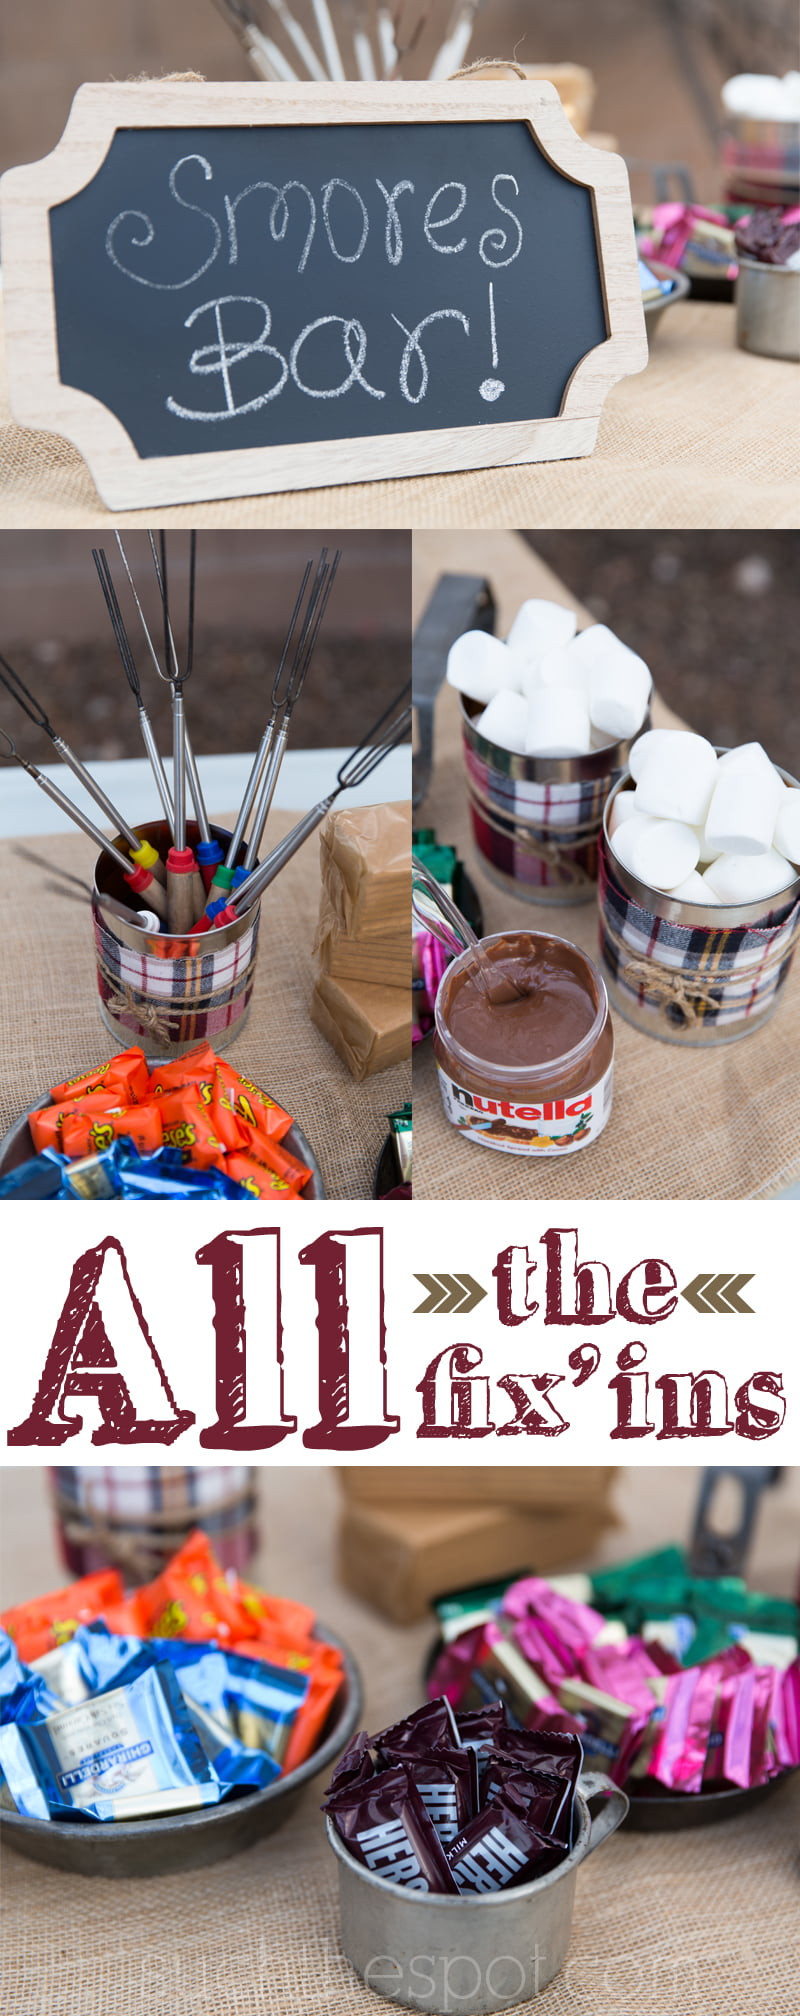 Decorations For A Birthday Party  Bonfire Birthday Party Ideas for Food Decorations and Fun